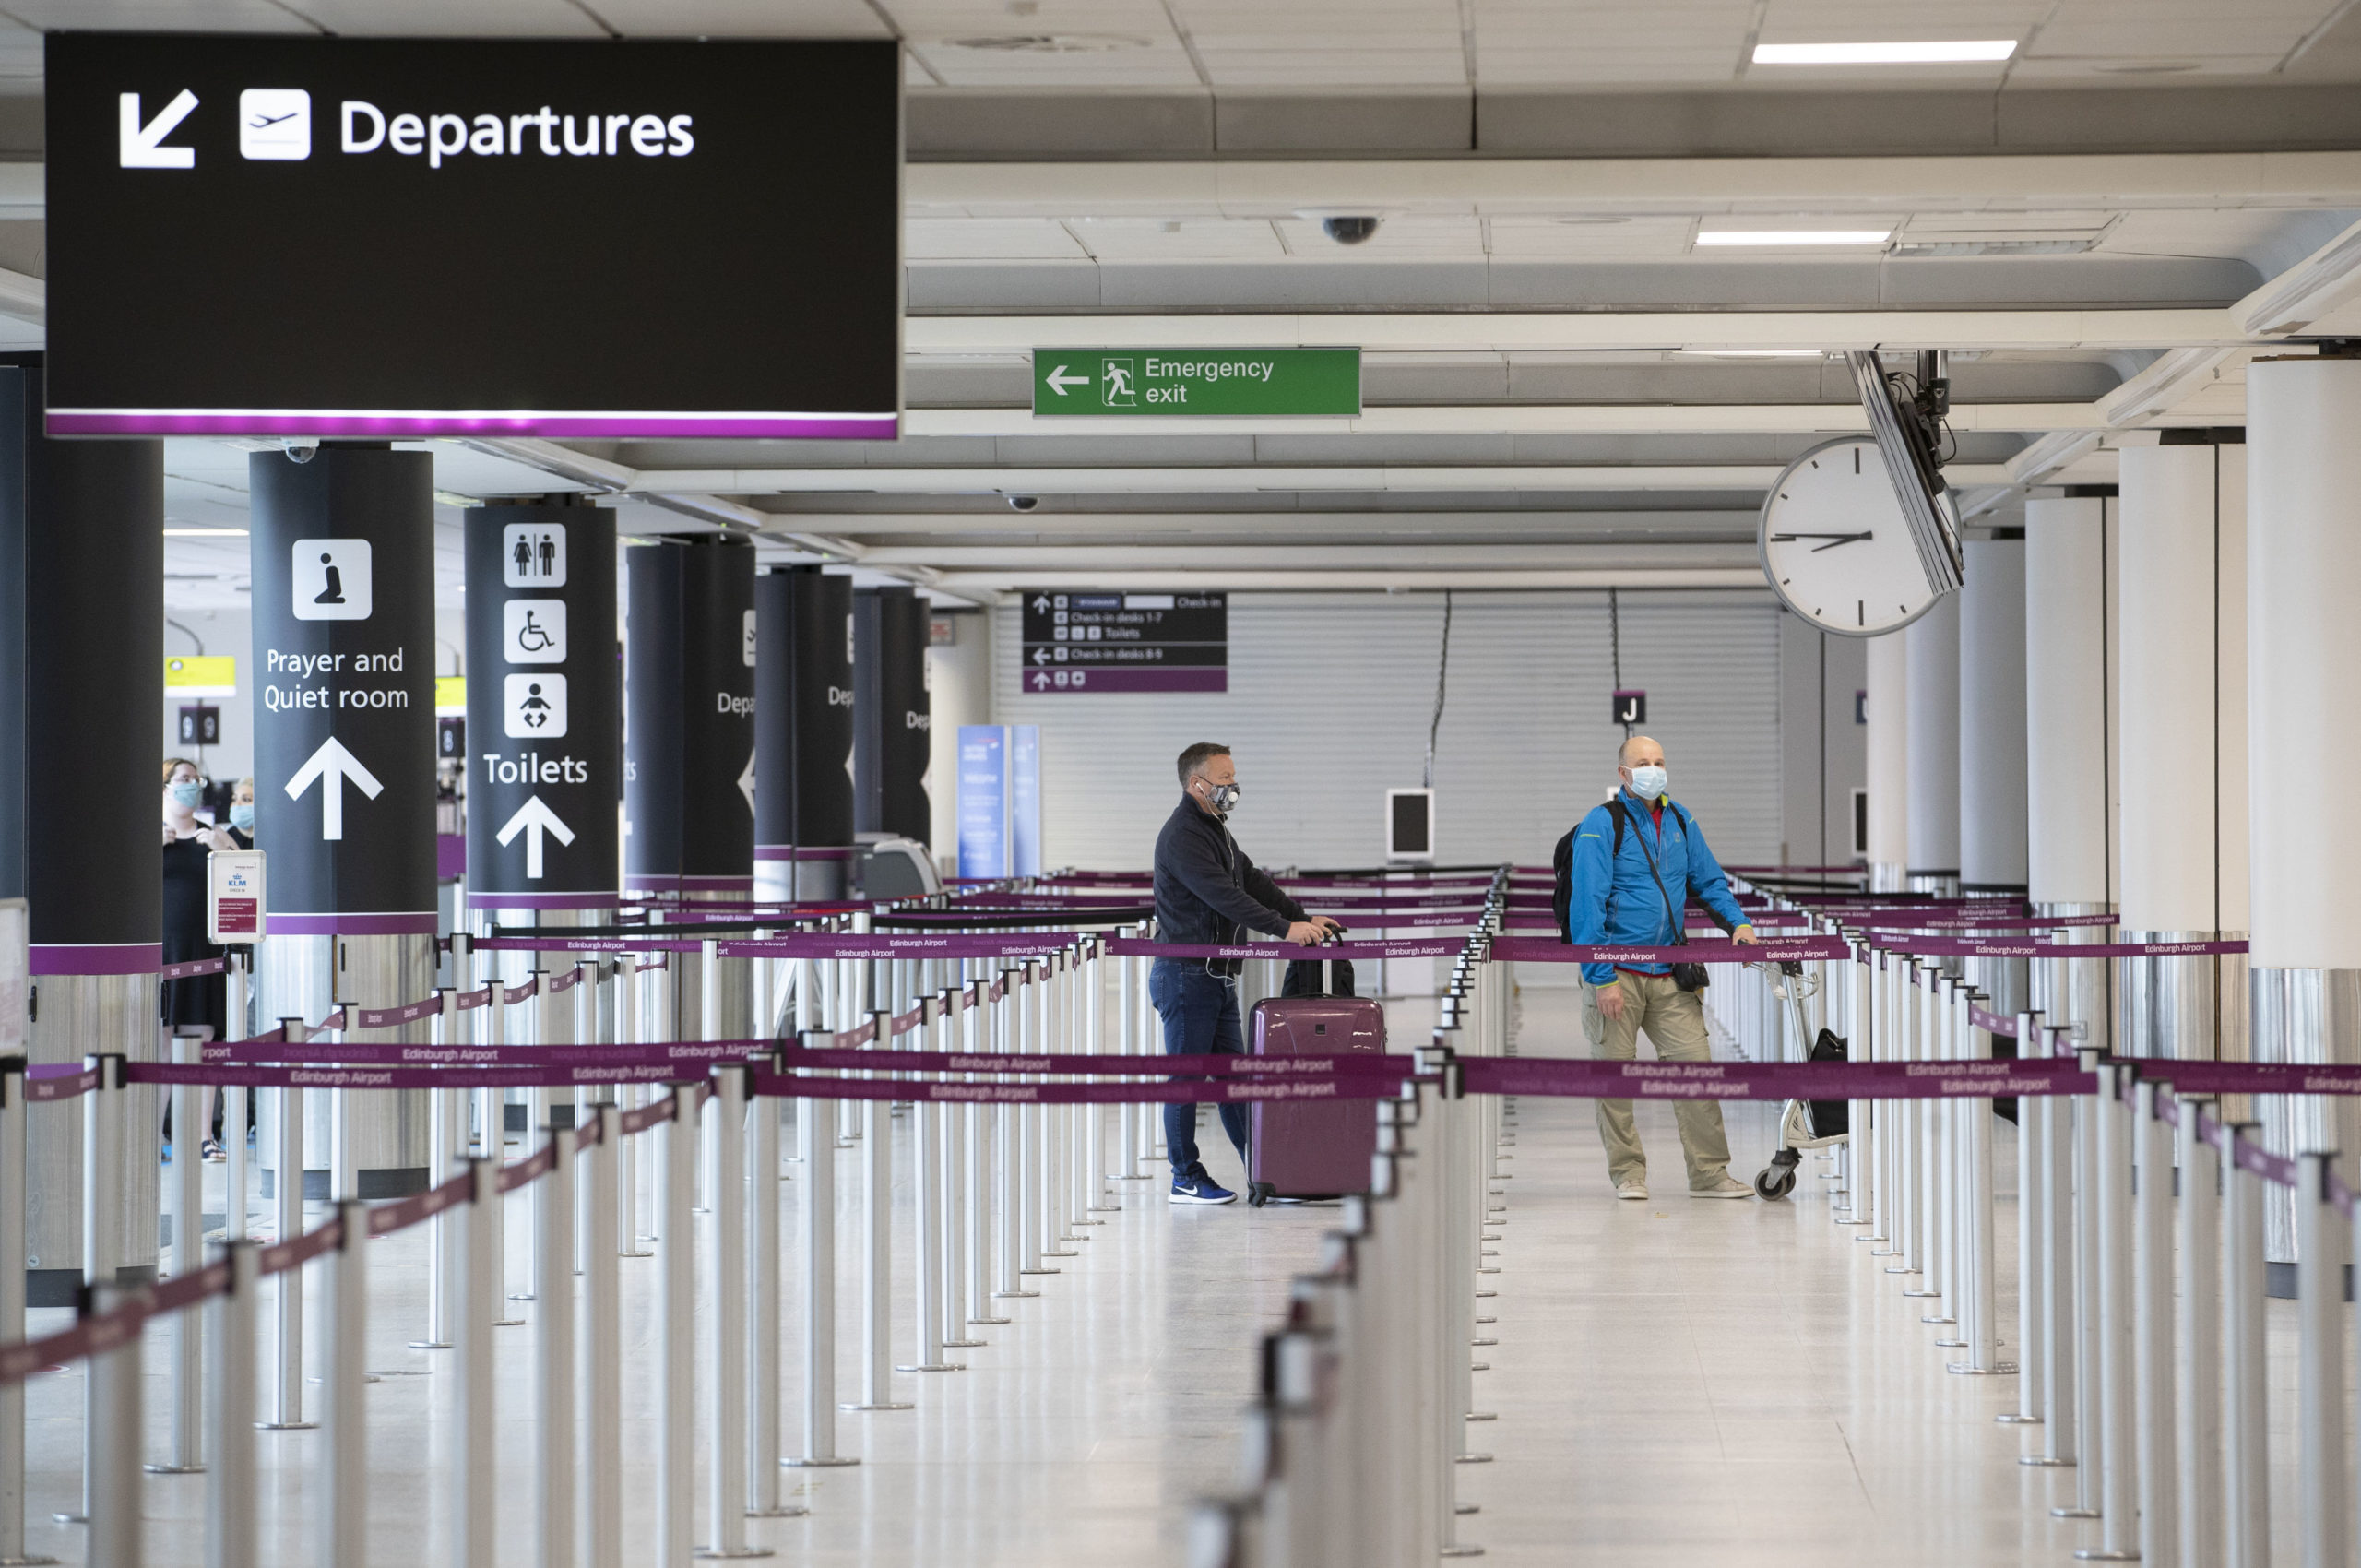 Passengers at the check-in area at Edinburgh Airport